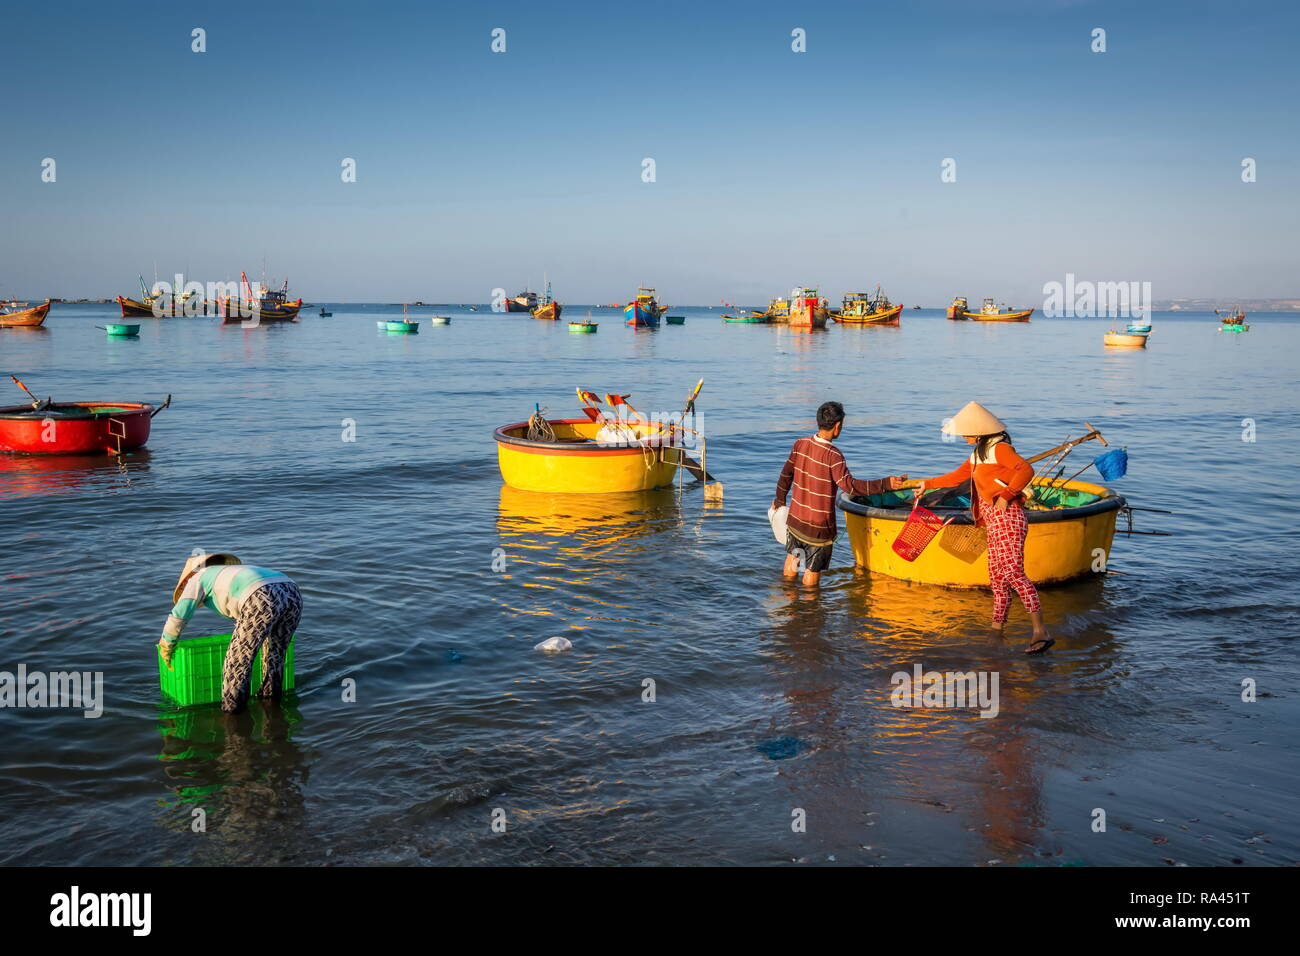 fishermen village in Phan Thiet Vietnam. Traditional Vietnamese boats in fishing port and fishermen trading fish products in the fishing village - Stock Image